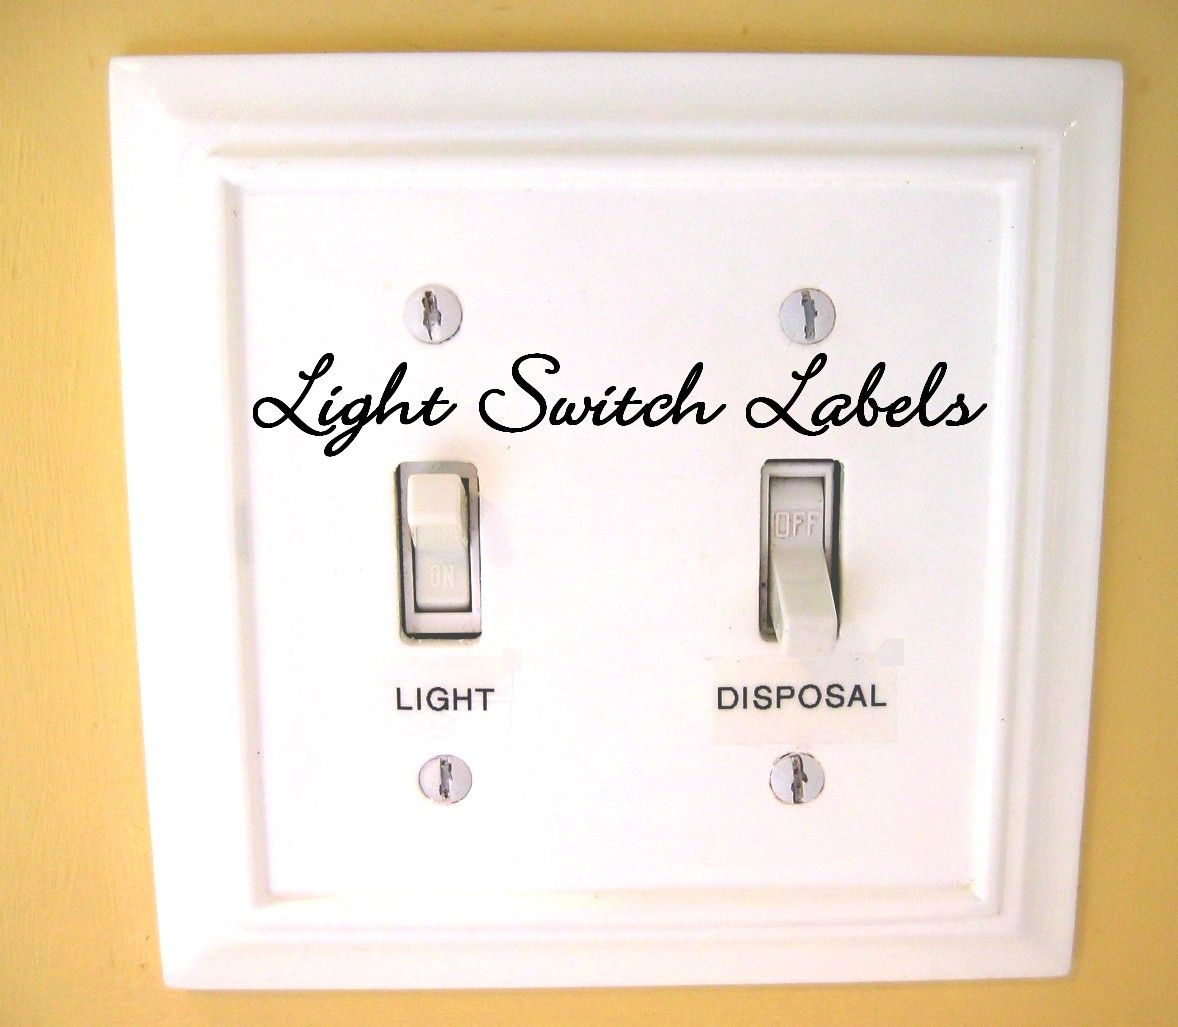 light switch labels   For the Home   Pinterest   Light switches and ...